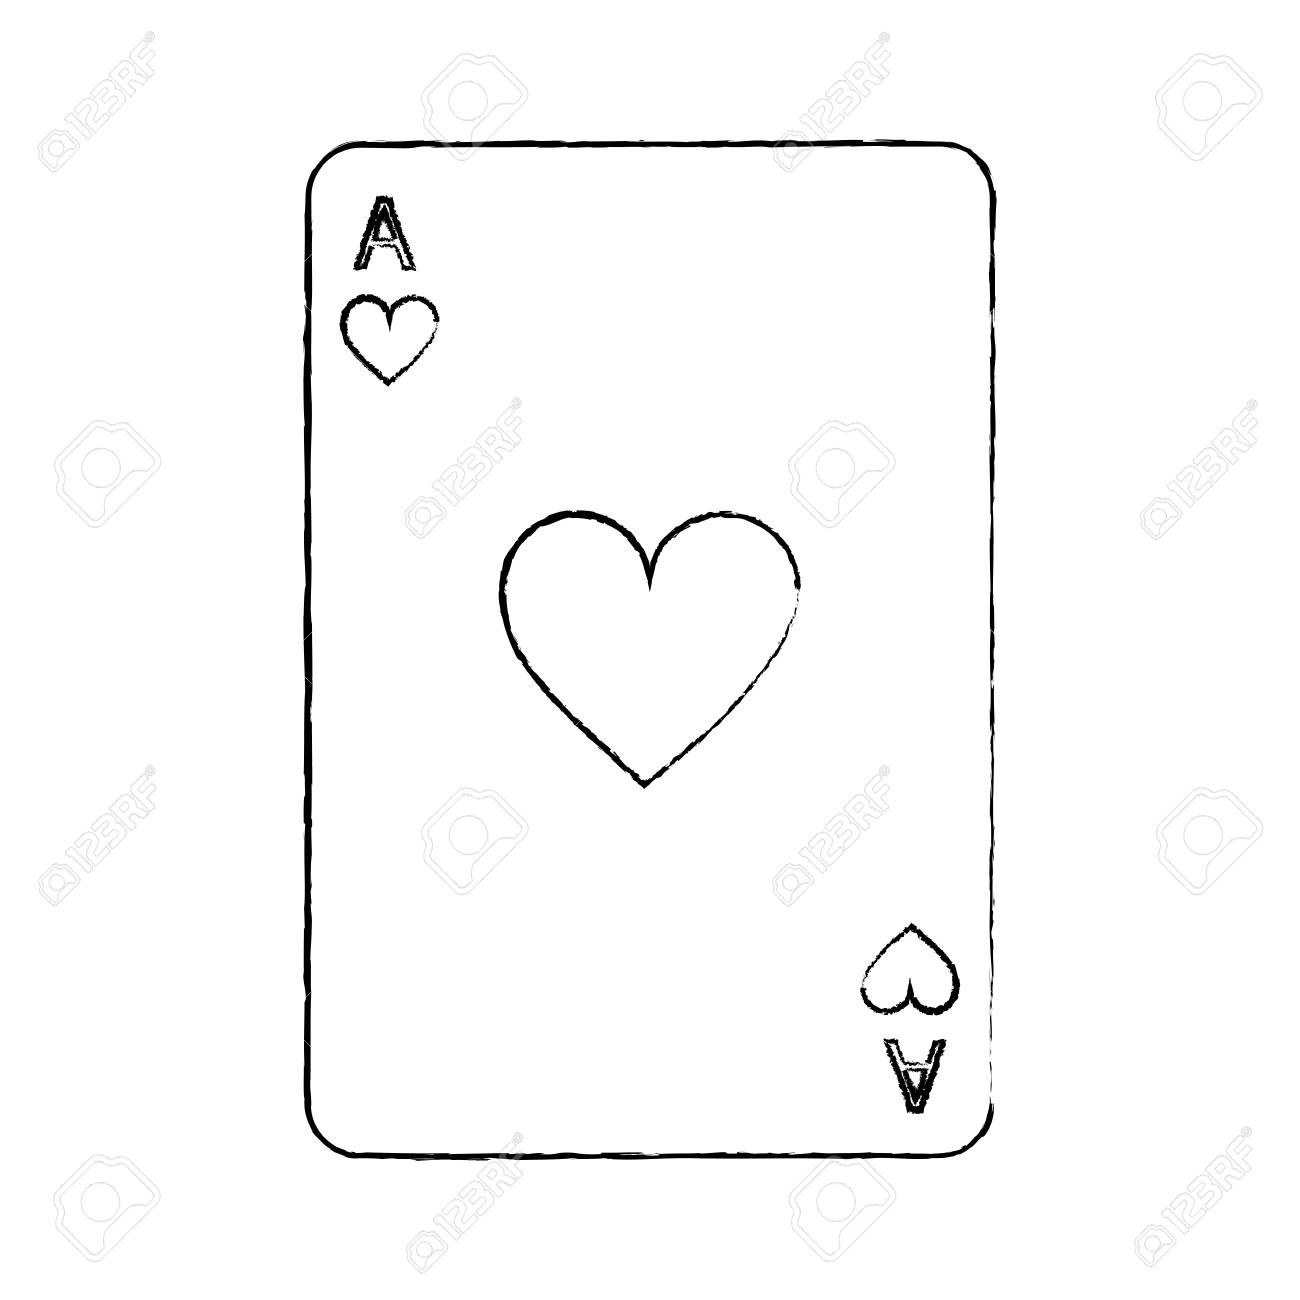 ace of hearts french playing cards related icon image vector illustration design black sketch line - 90169630